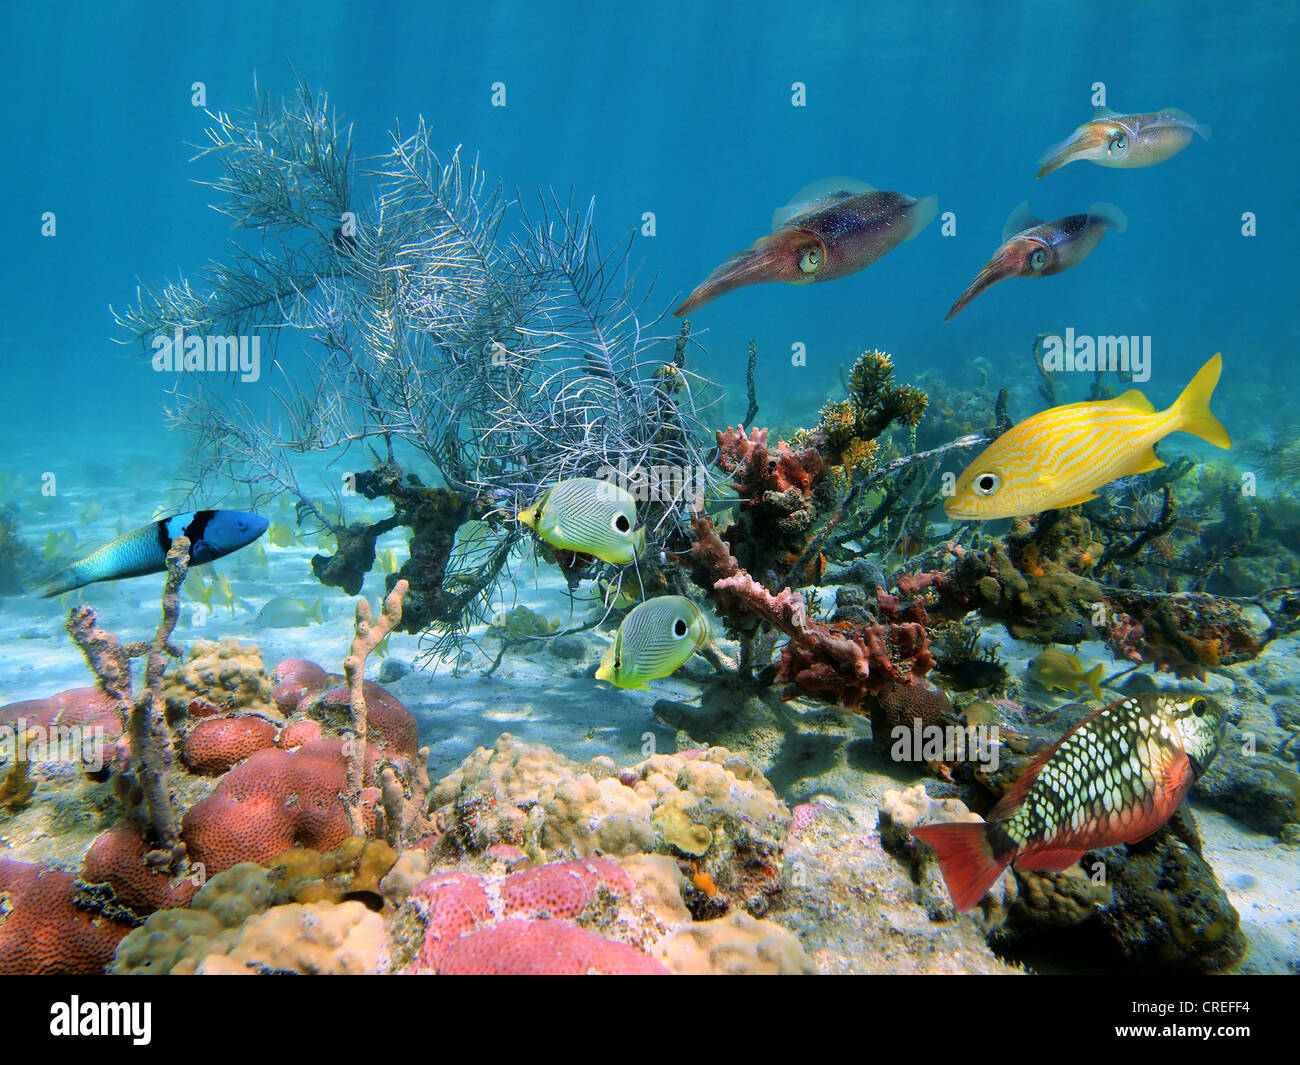 Caribbean Sea Animal Life: Underwater Sea Life With Tropical Fish And Caribbean Reef